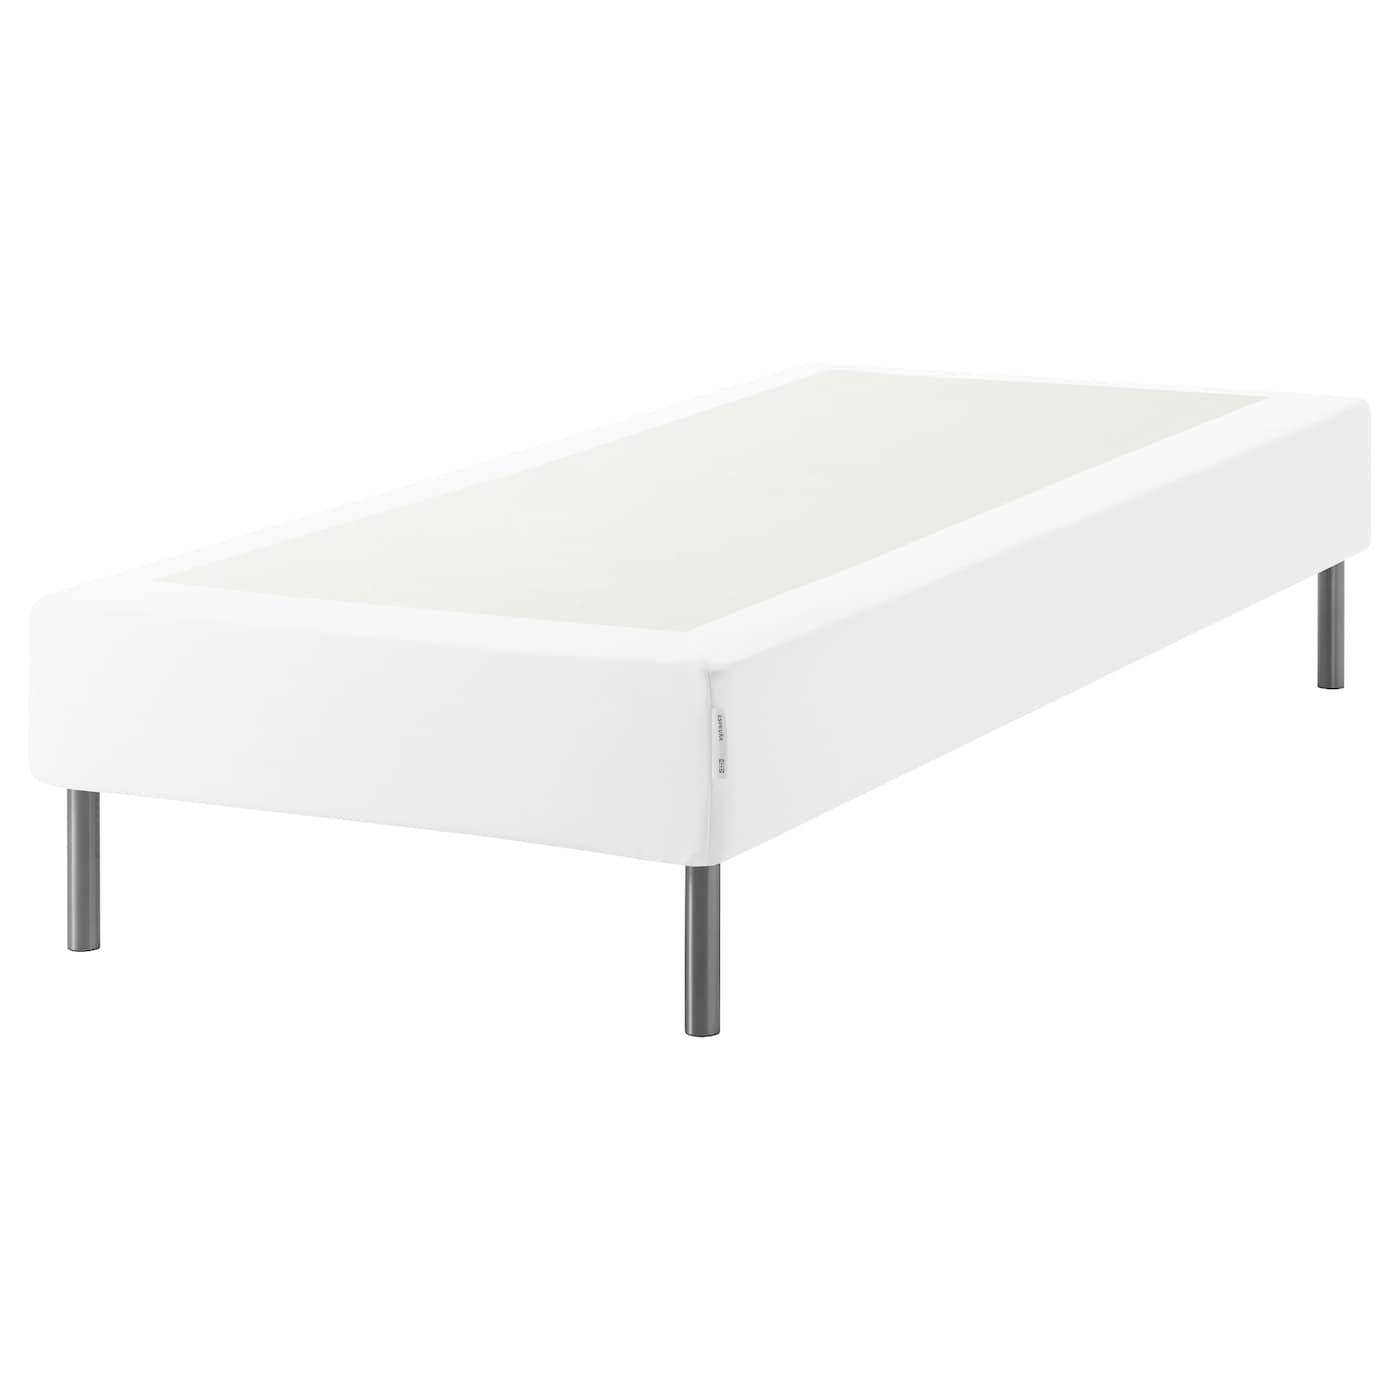 espev r sommier ressorts avec pieds blanc 90x200 cm ikea. Black Bedroom Furniture Sets. Home Design Ideas